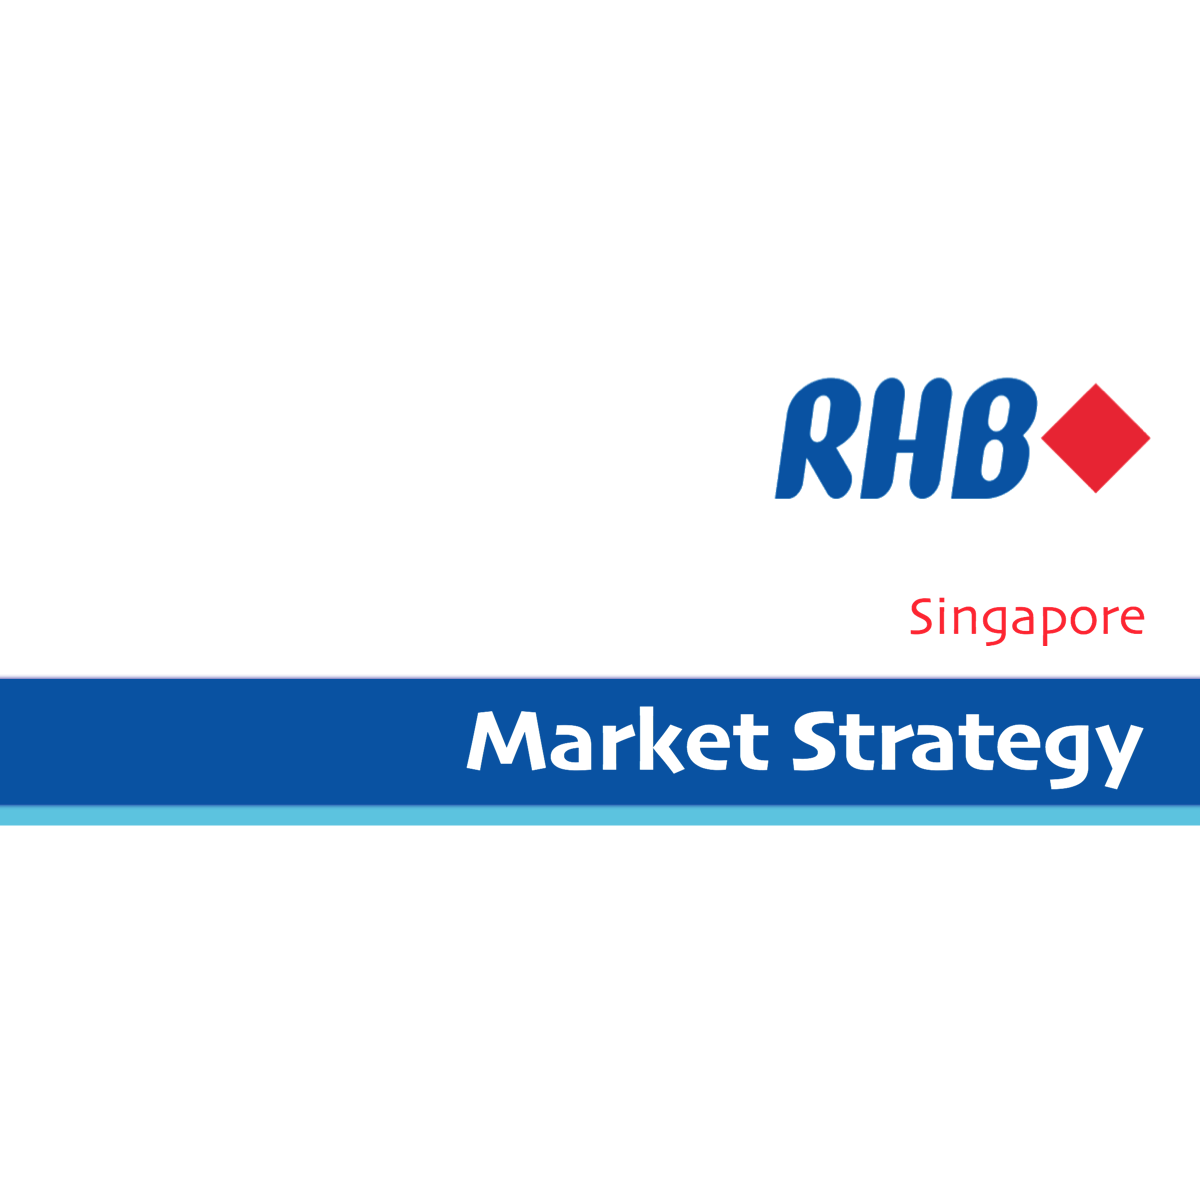 Strategy - Singapore - RHB Securities Research 2018-06-26: Investment Themes For 2h18